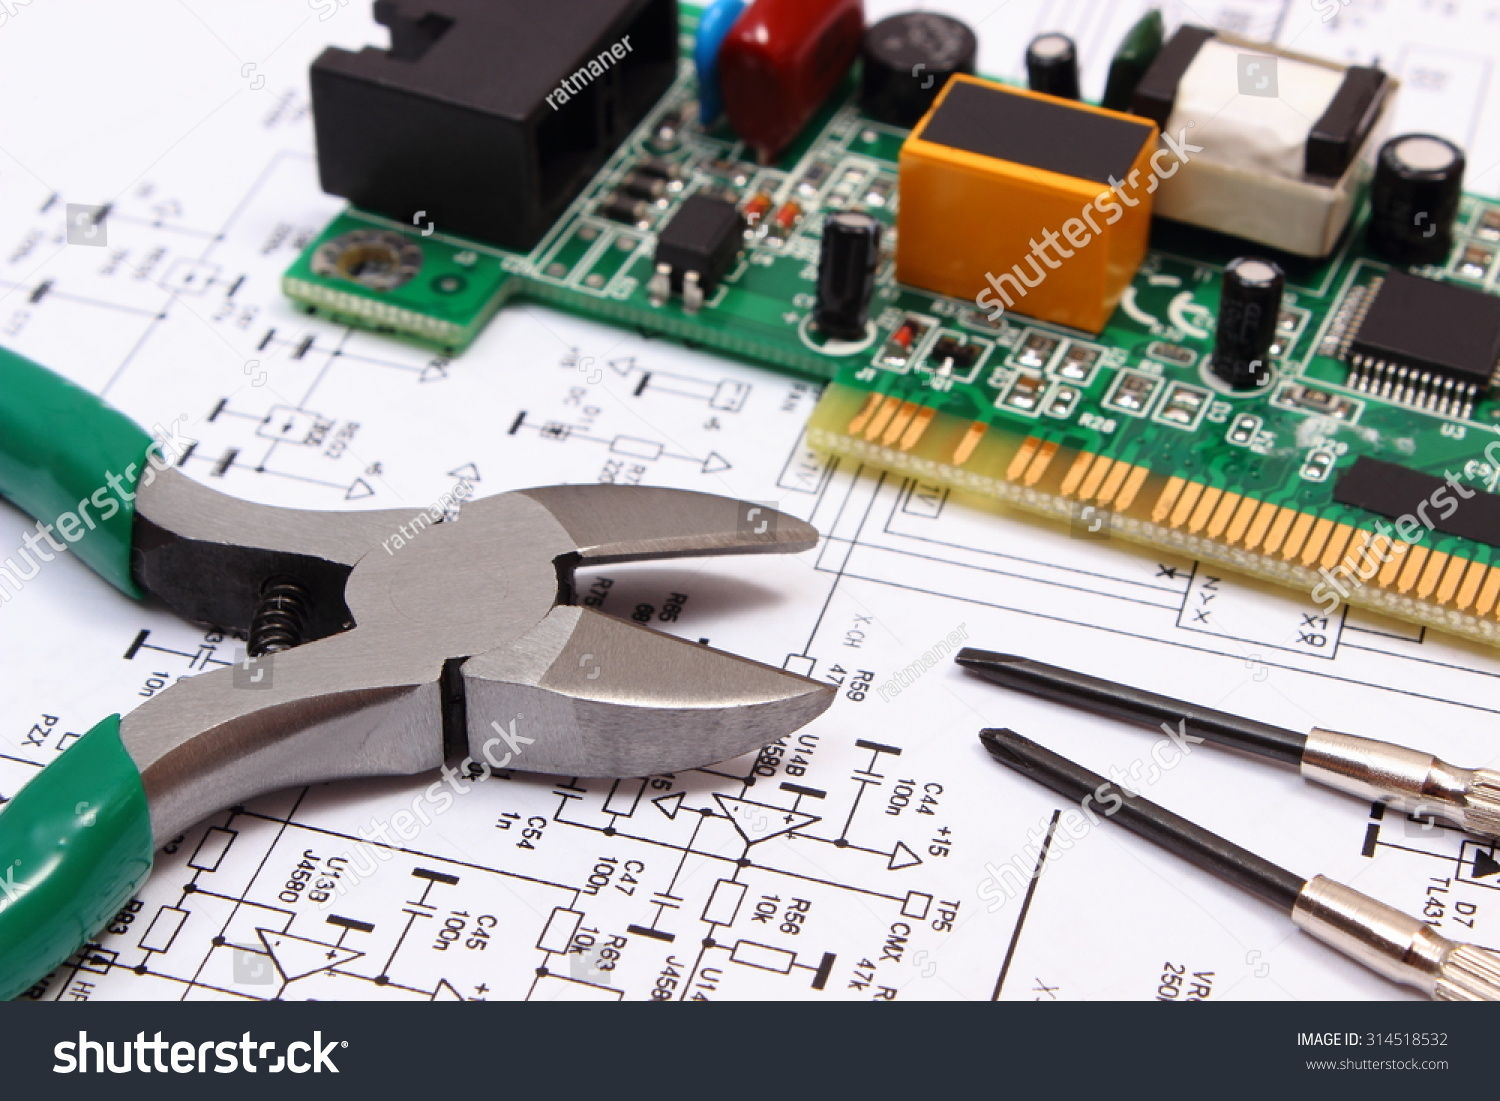 Royalty Free Printed Circuit Board With Electrical 314518532 Stock Detail Of A Image Components And Precision Tools Lying On Construction Drawing Electronics